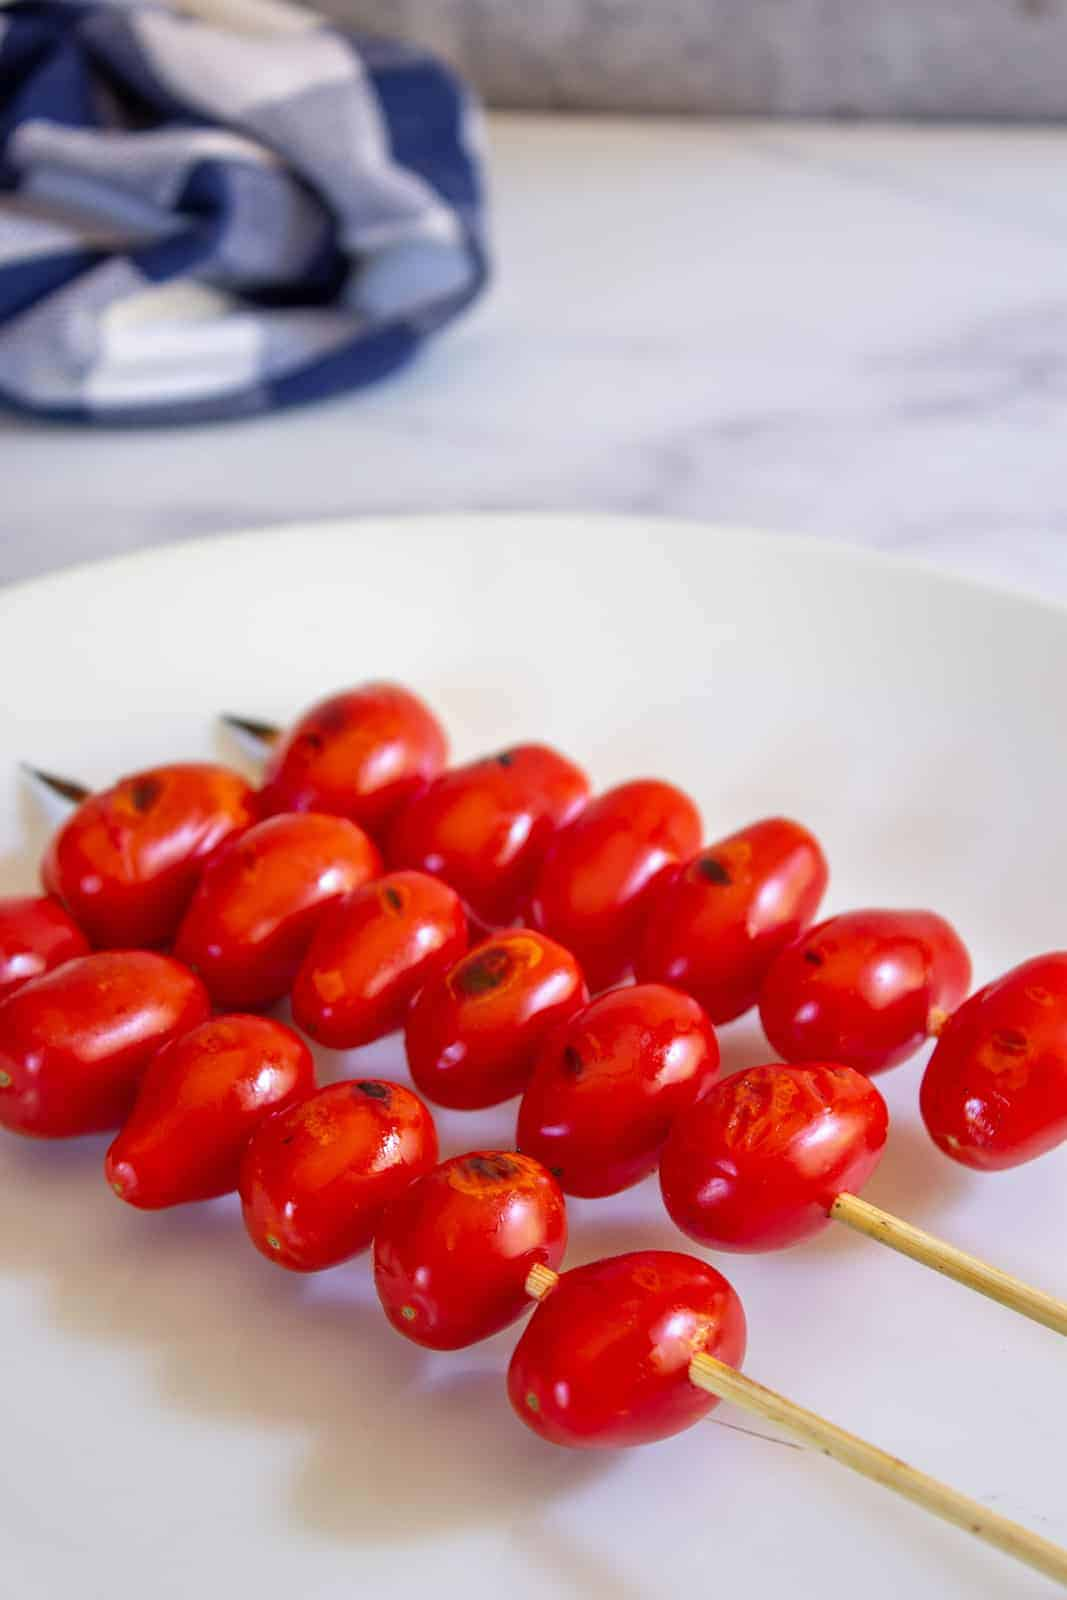 Cherry tomatoes on a wooden skewer.